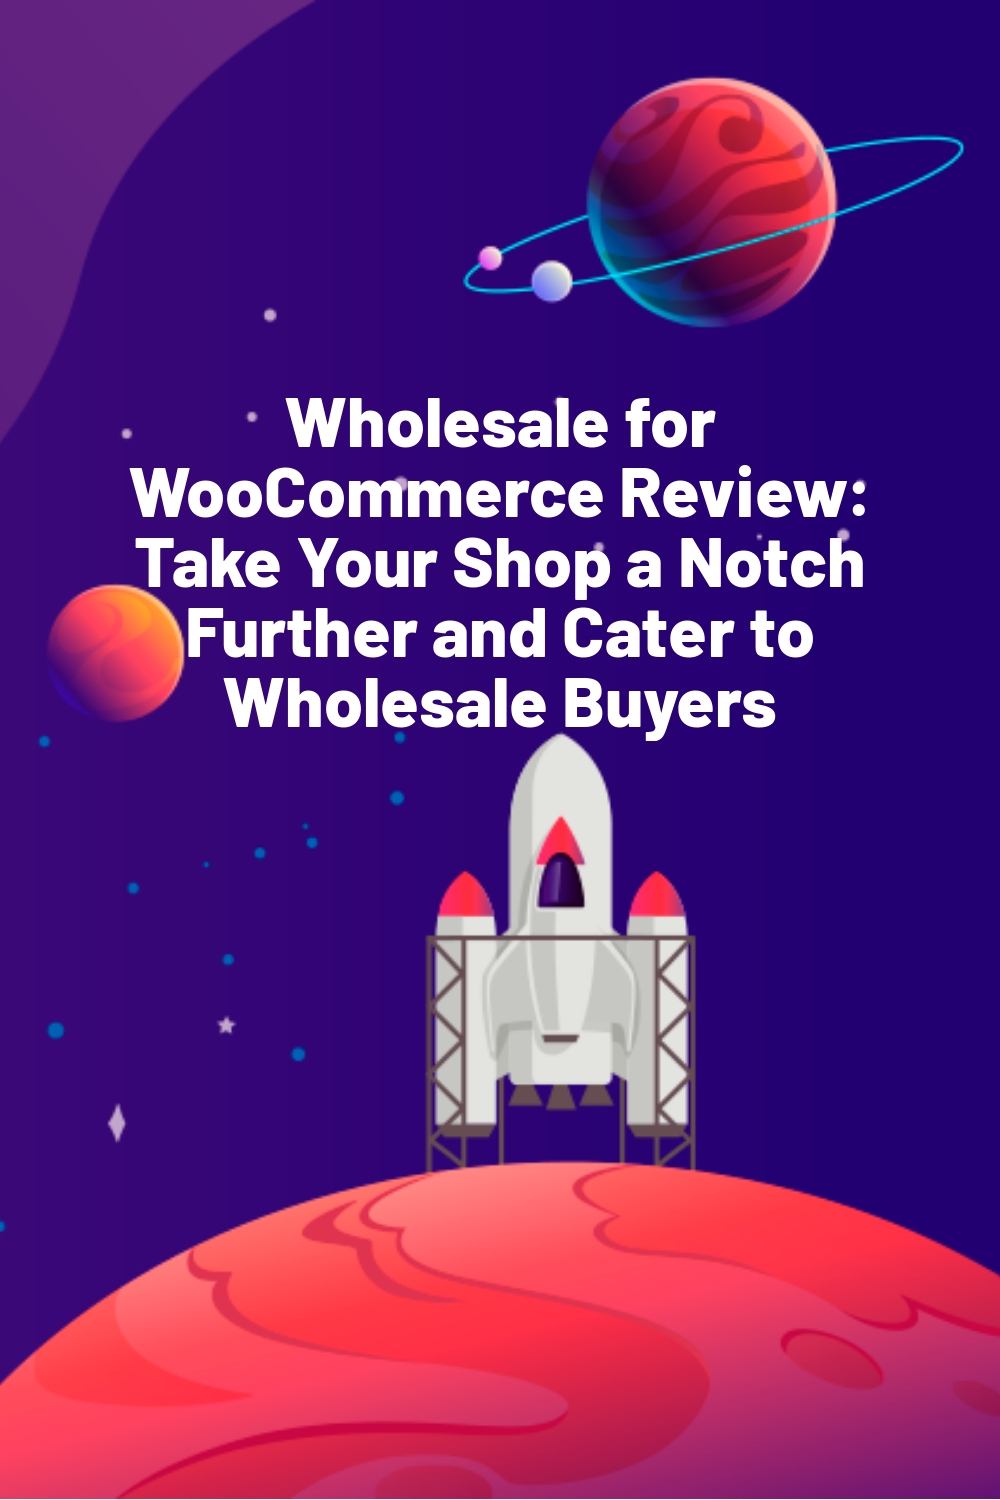 Wholesale for WooCommerce Review: Take Your Shop a Notch Further and Cater to Wholesale Buyers